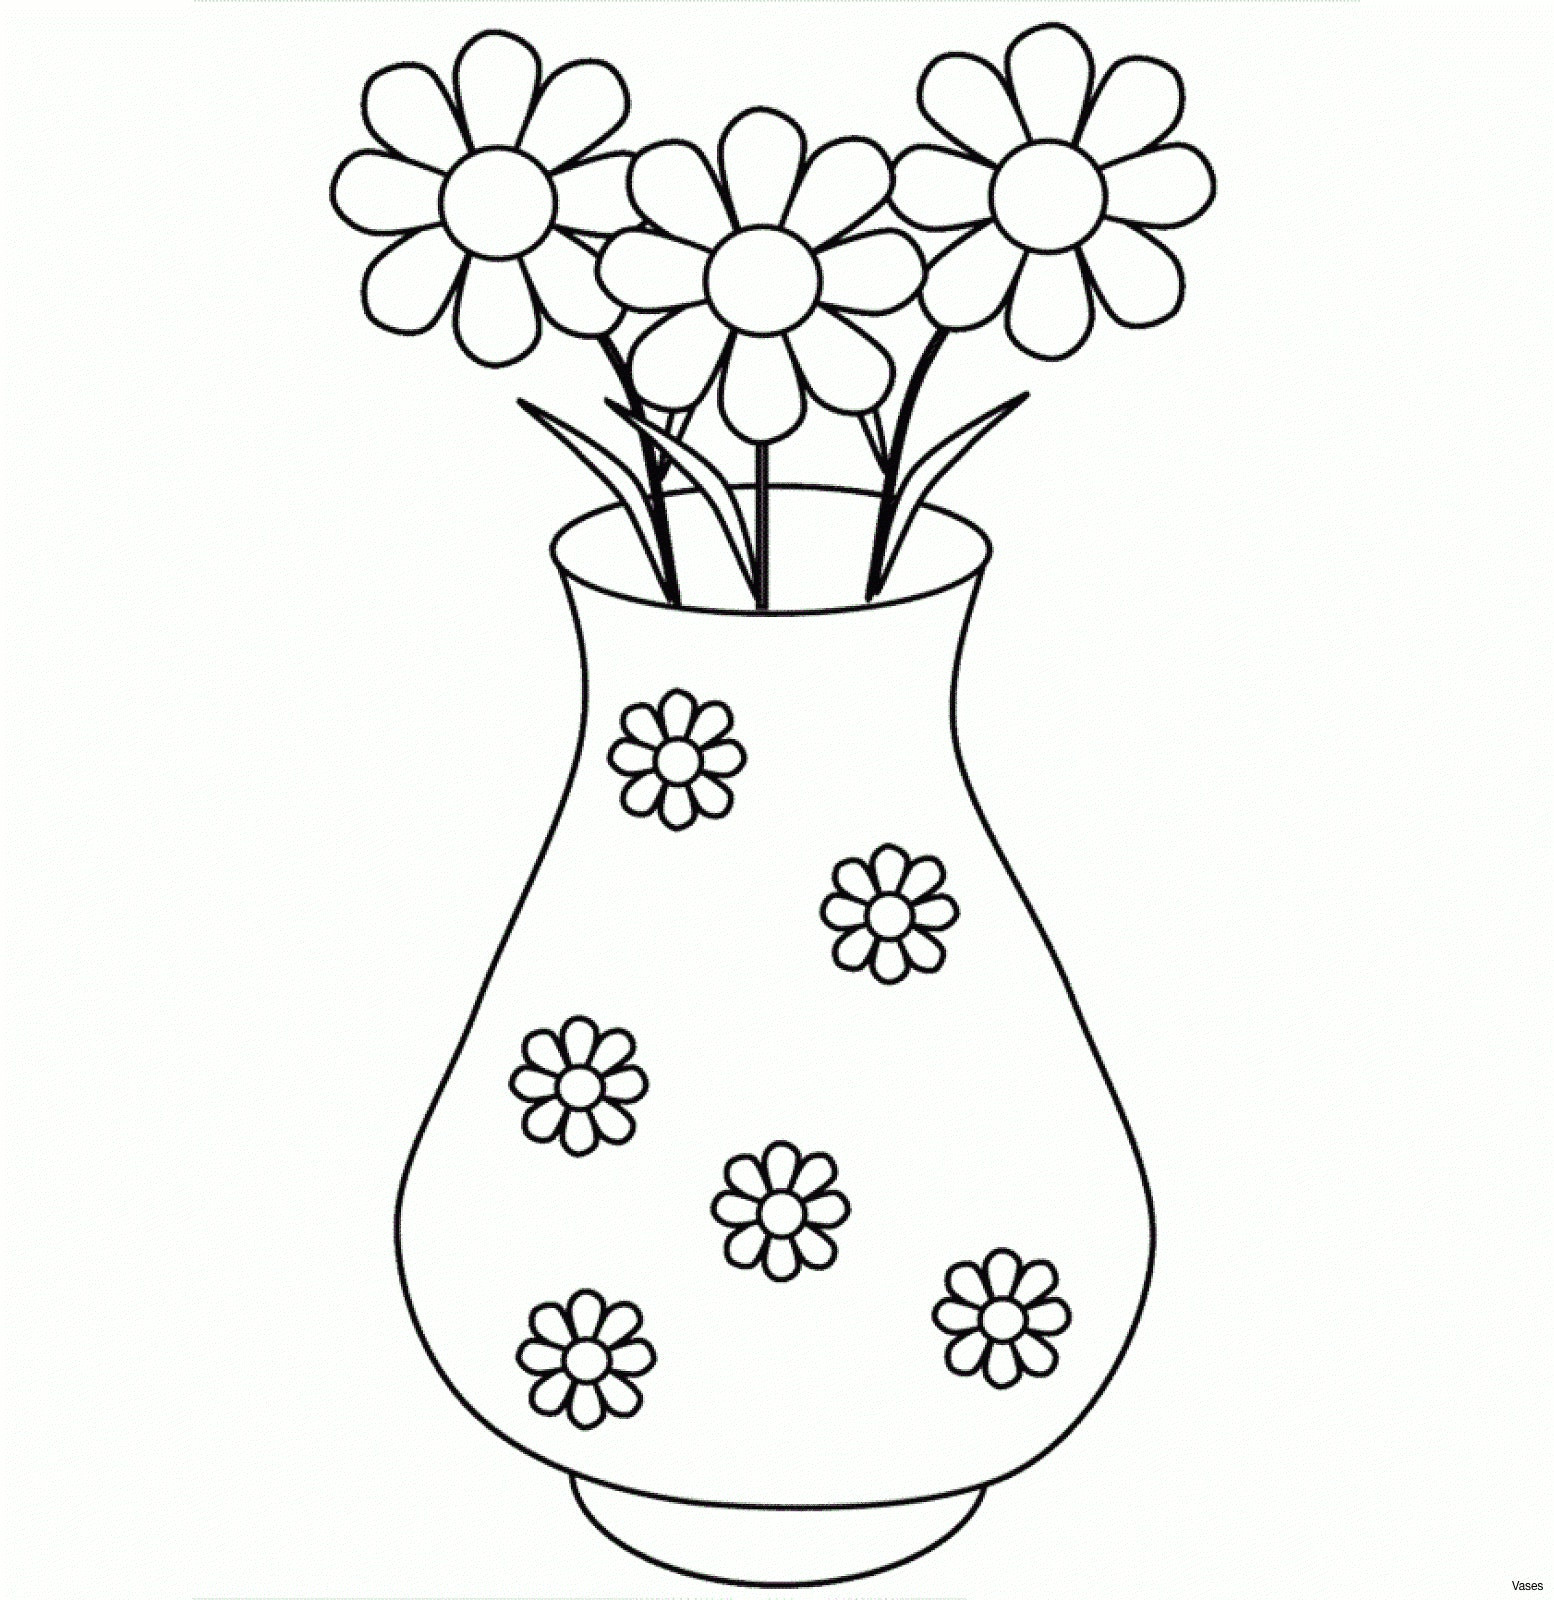 flowers to draw easy step by step 50 awesome collection sketch for kids of flowers to